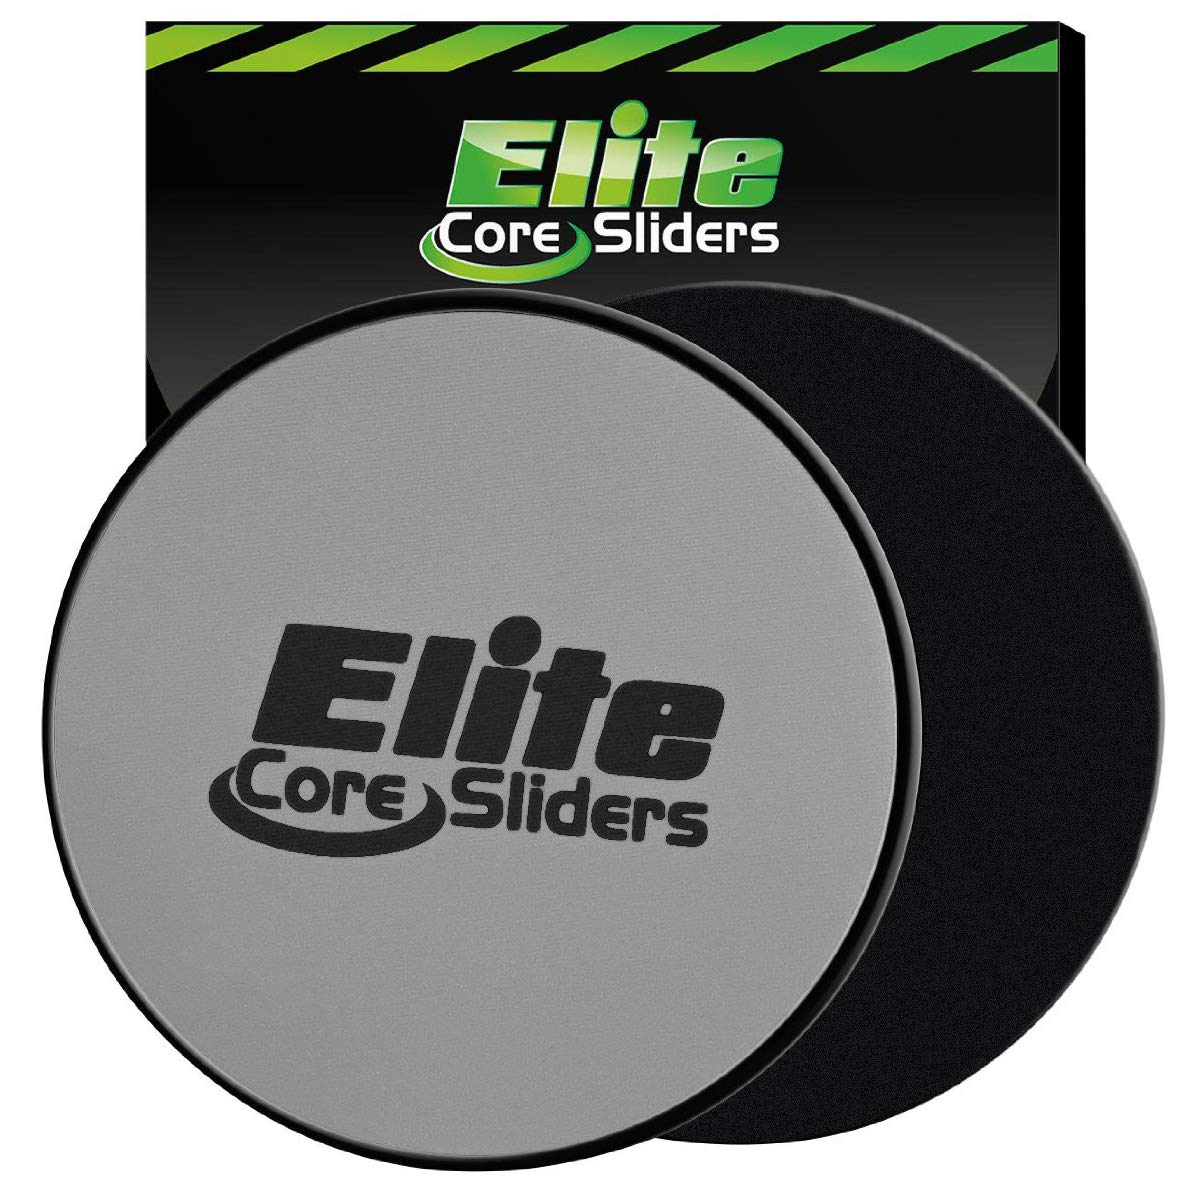 Elite Sportz Sliders for Working Out, 2 Dual Sided Gliding Discs for Exercise on Carpet & Hardwood Floors, Compact Core…